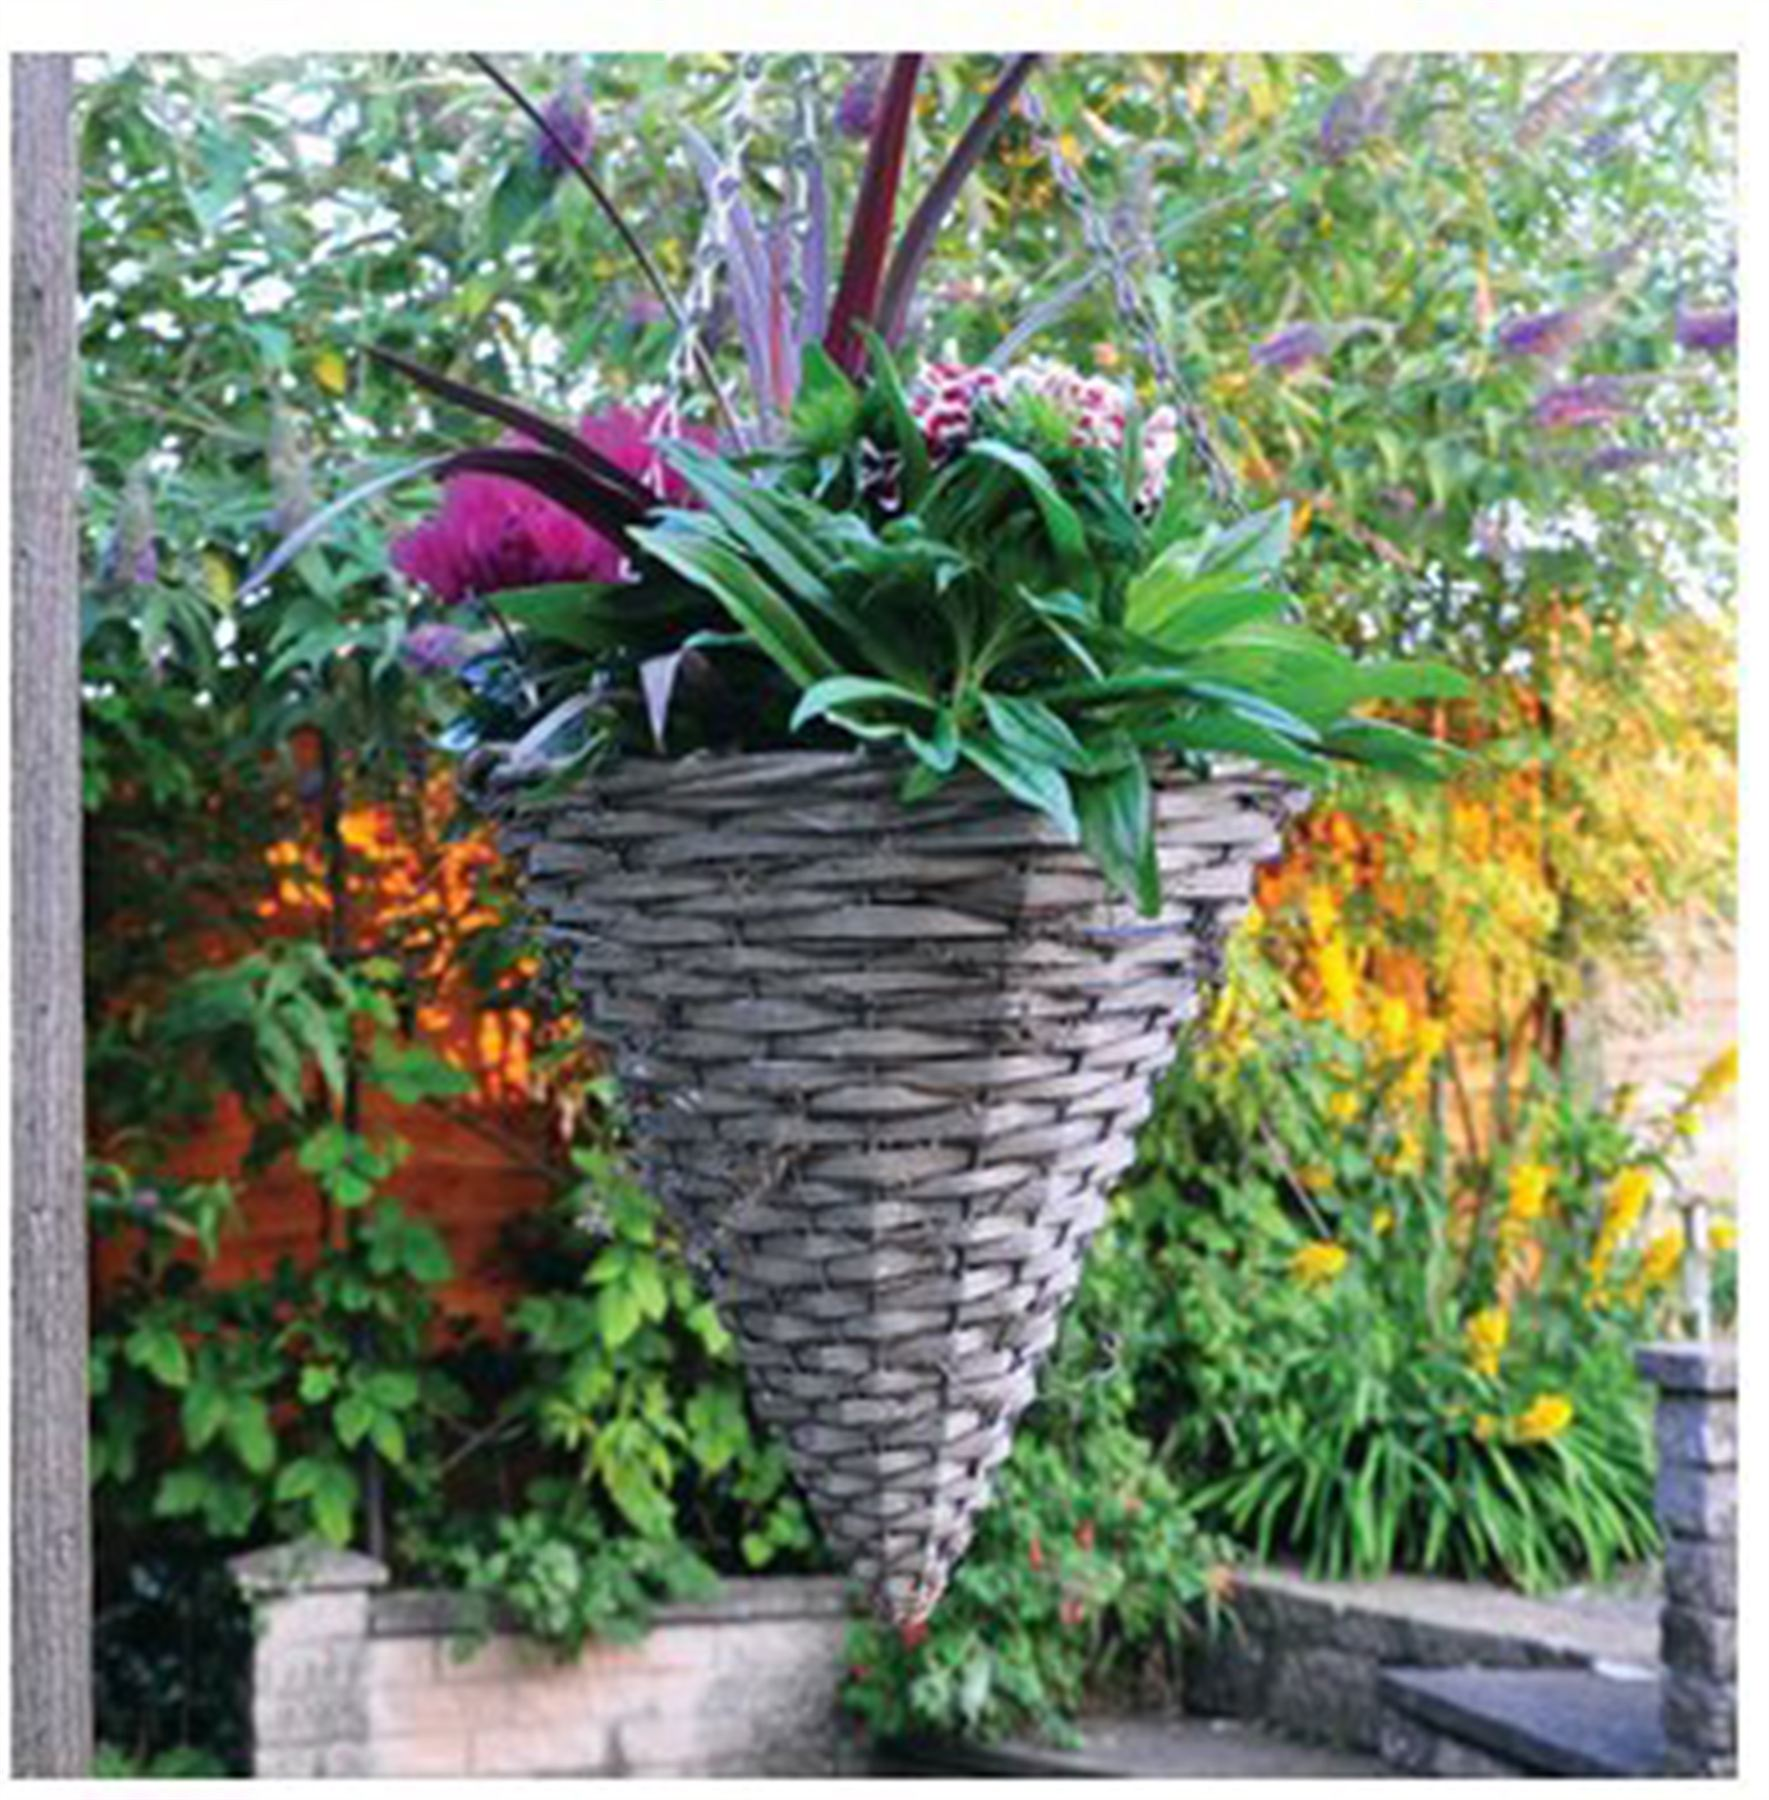 Hanging Flower Baskets Cone Shaped : Garden outdoor natural hanging planting wicker cone